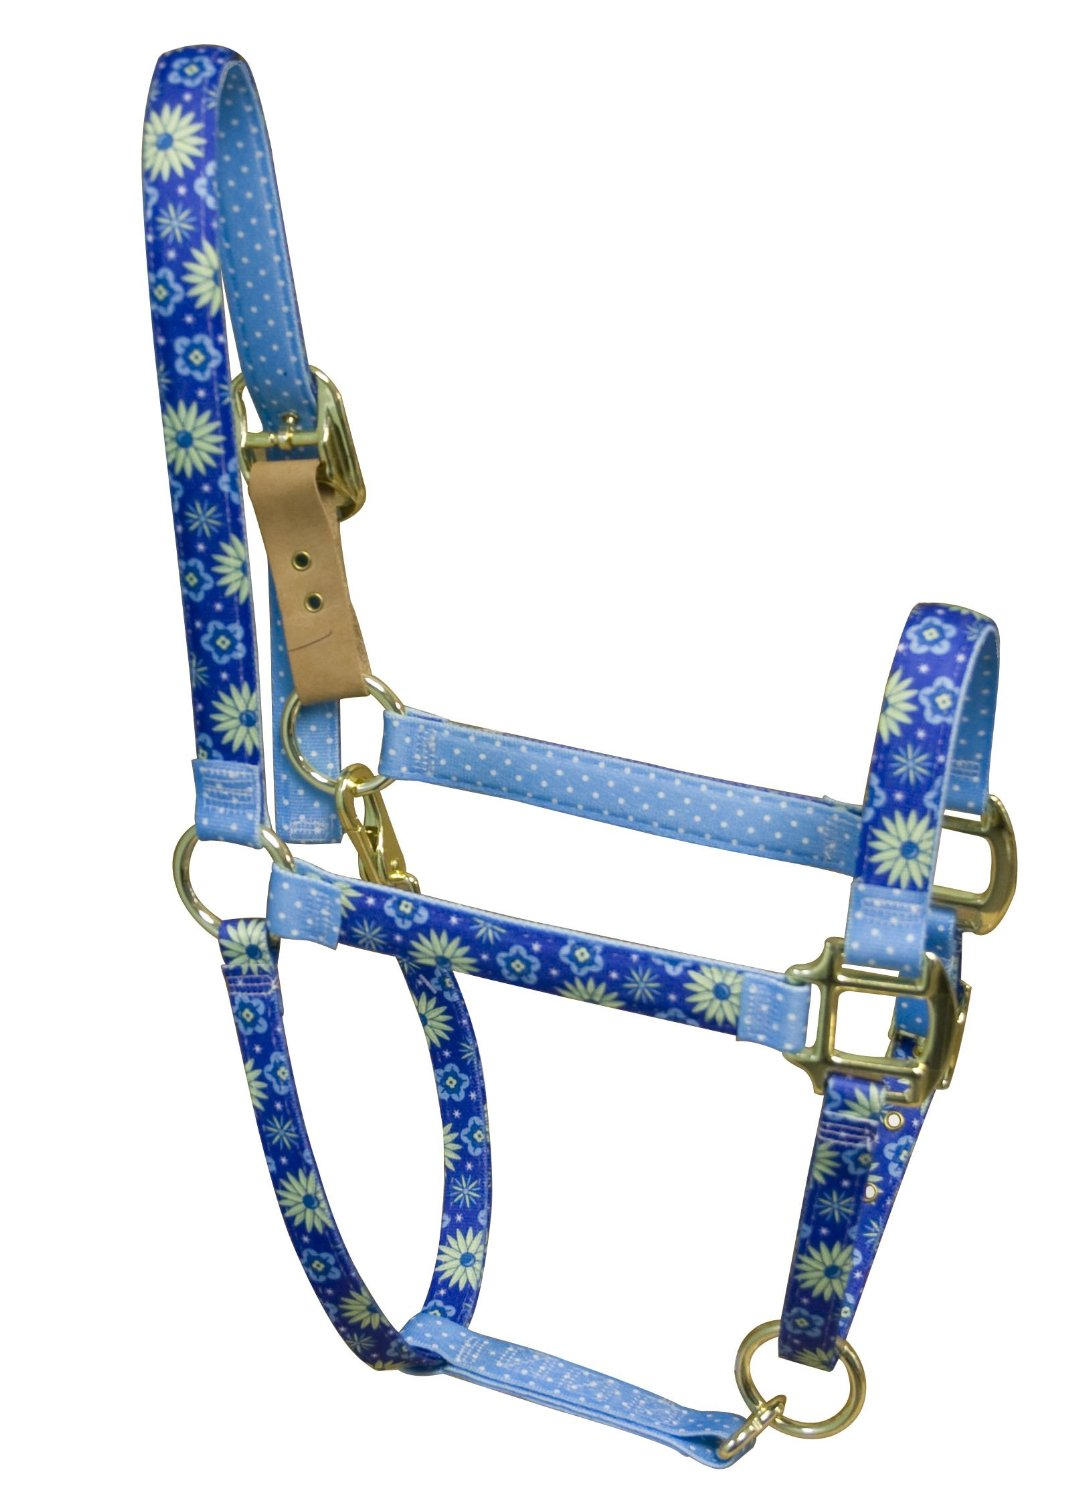 Red Haute Horse TEF1203 A High Fashion Horse Horse Halter, Teal Flowers